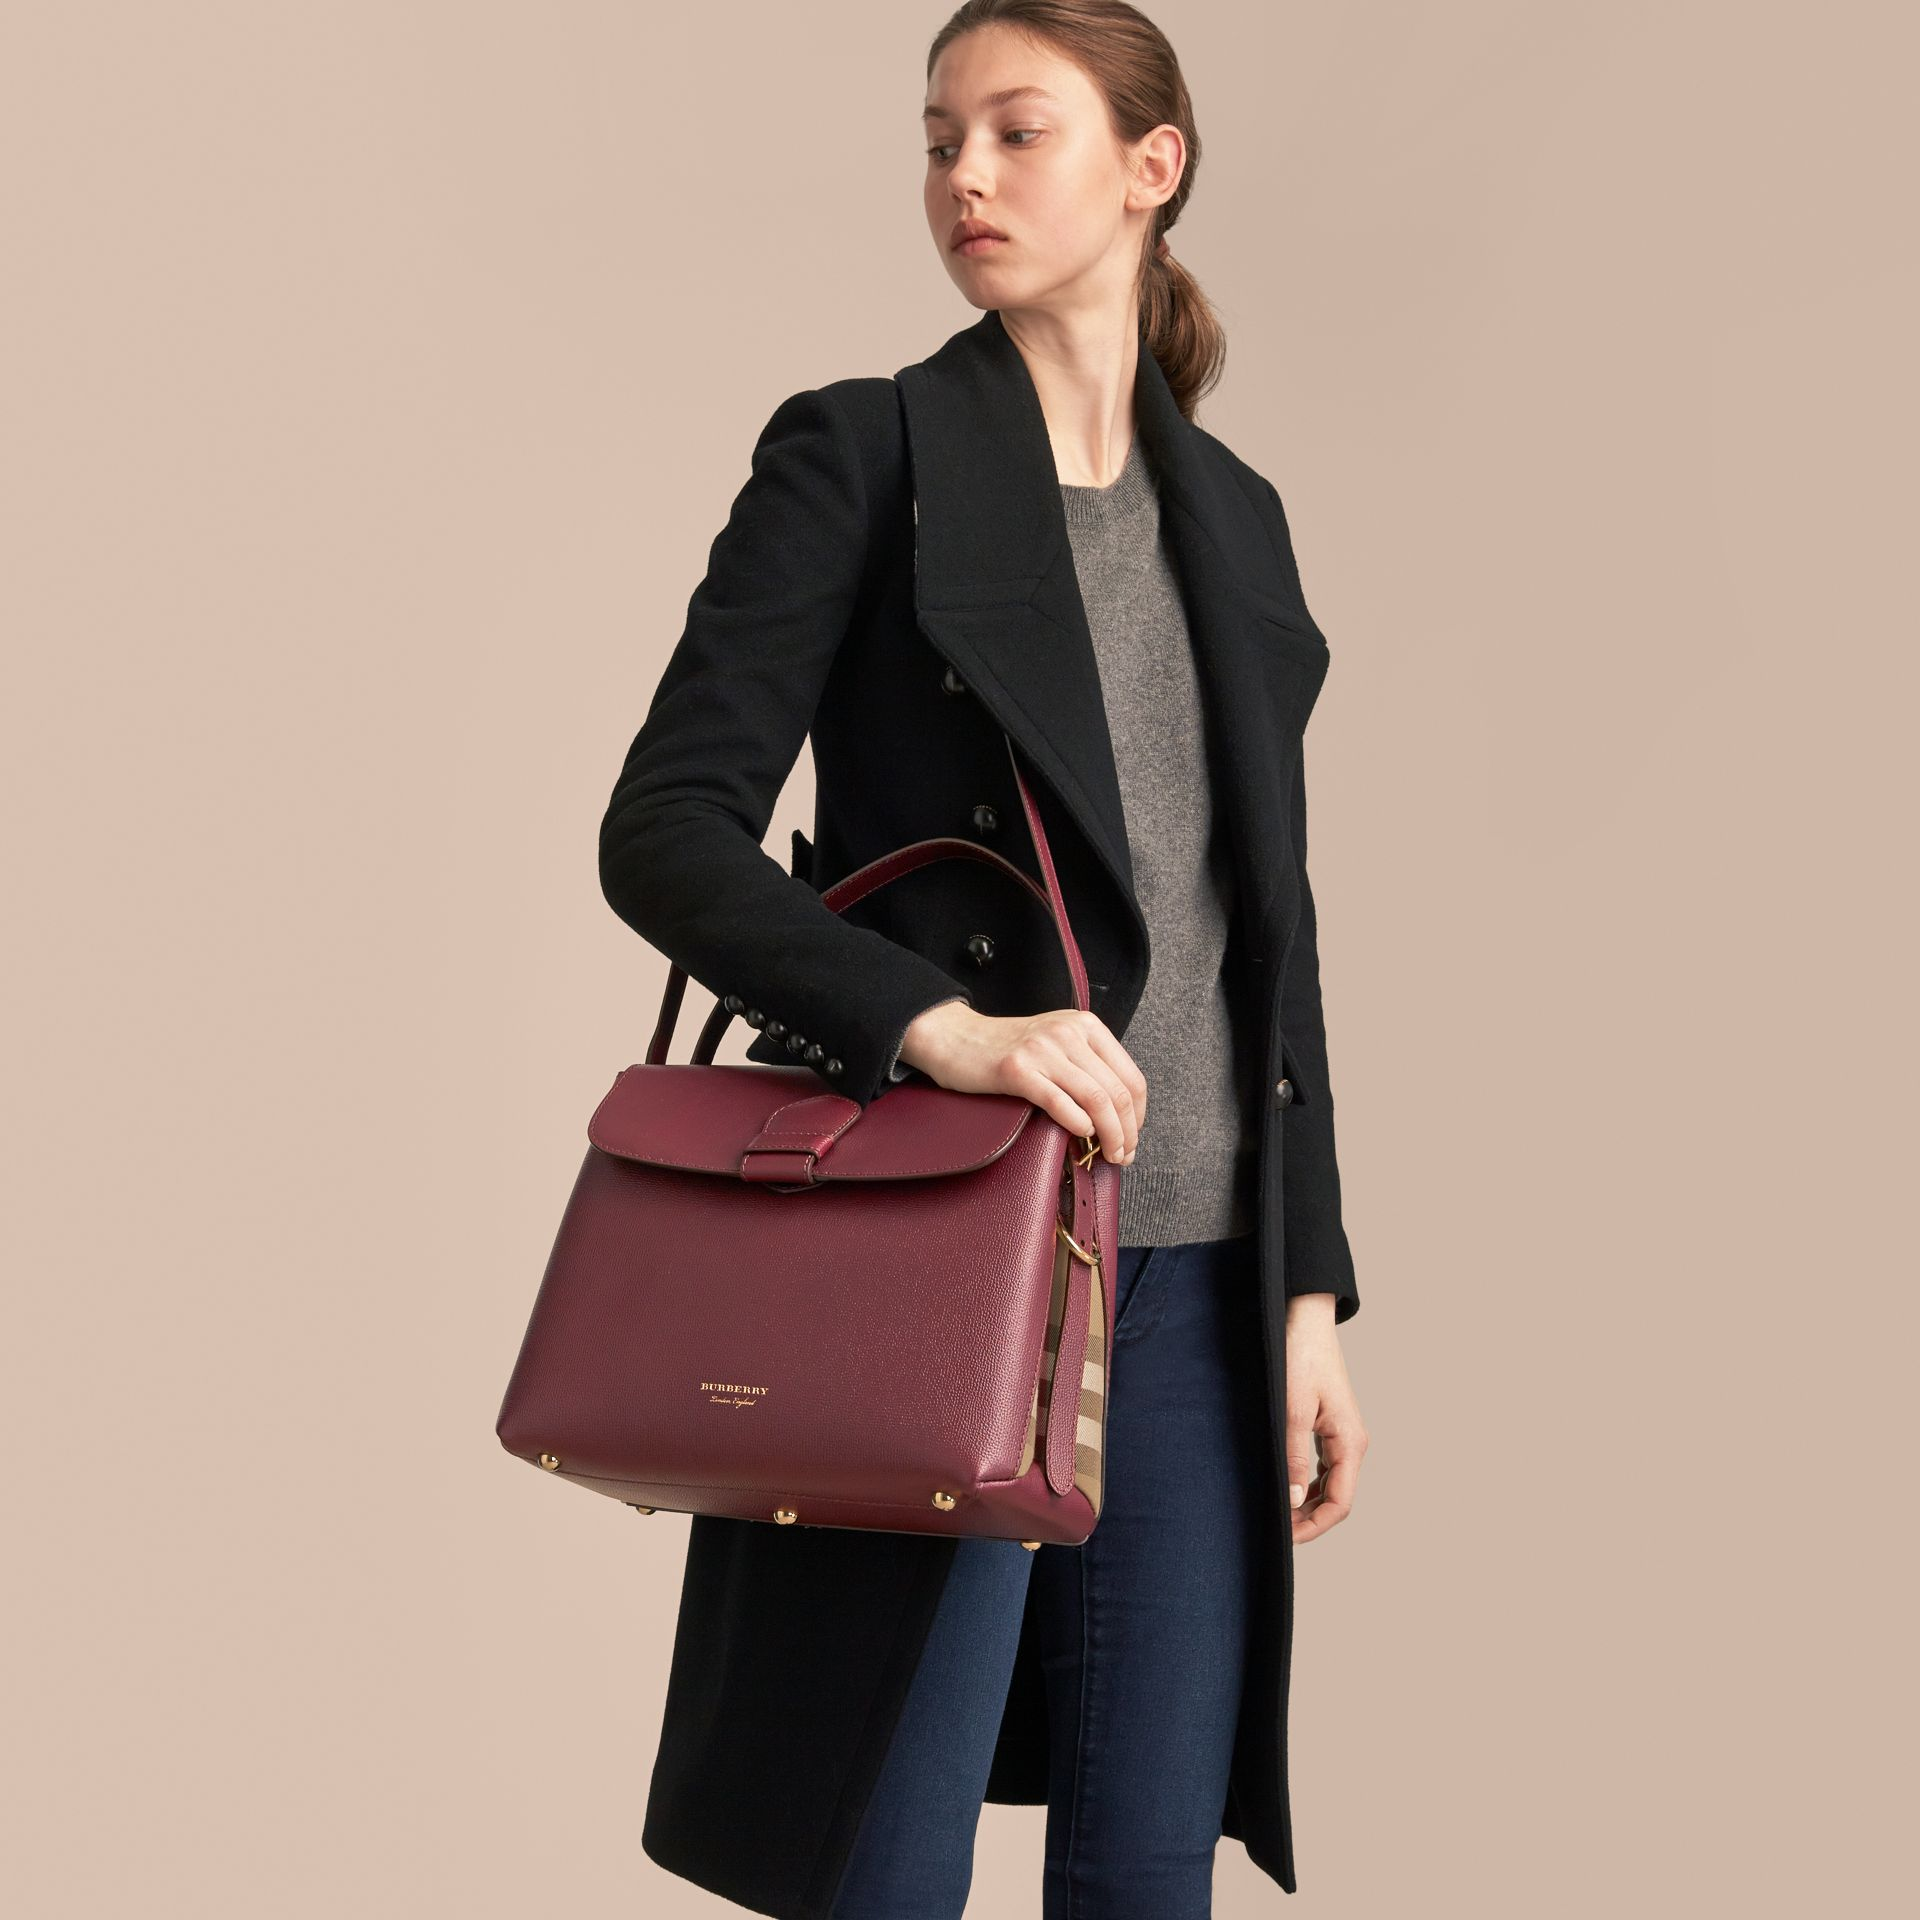 Medium Grainy Leather and House Check Tote Bag in Mahogany Red - Women | Burberry - gallery image 3